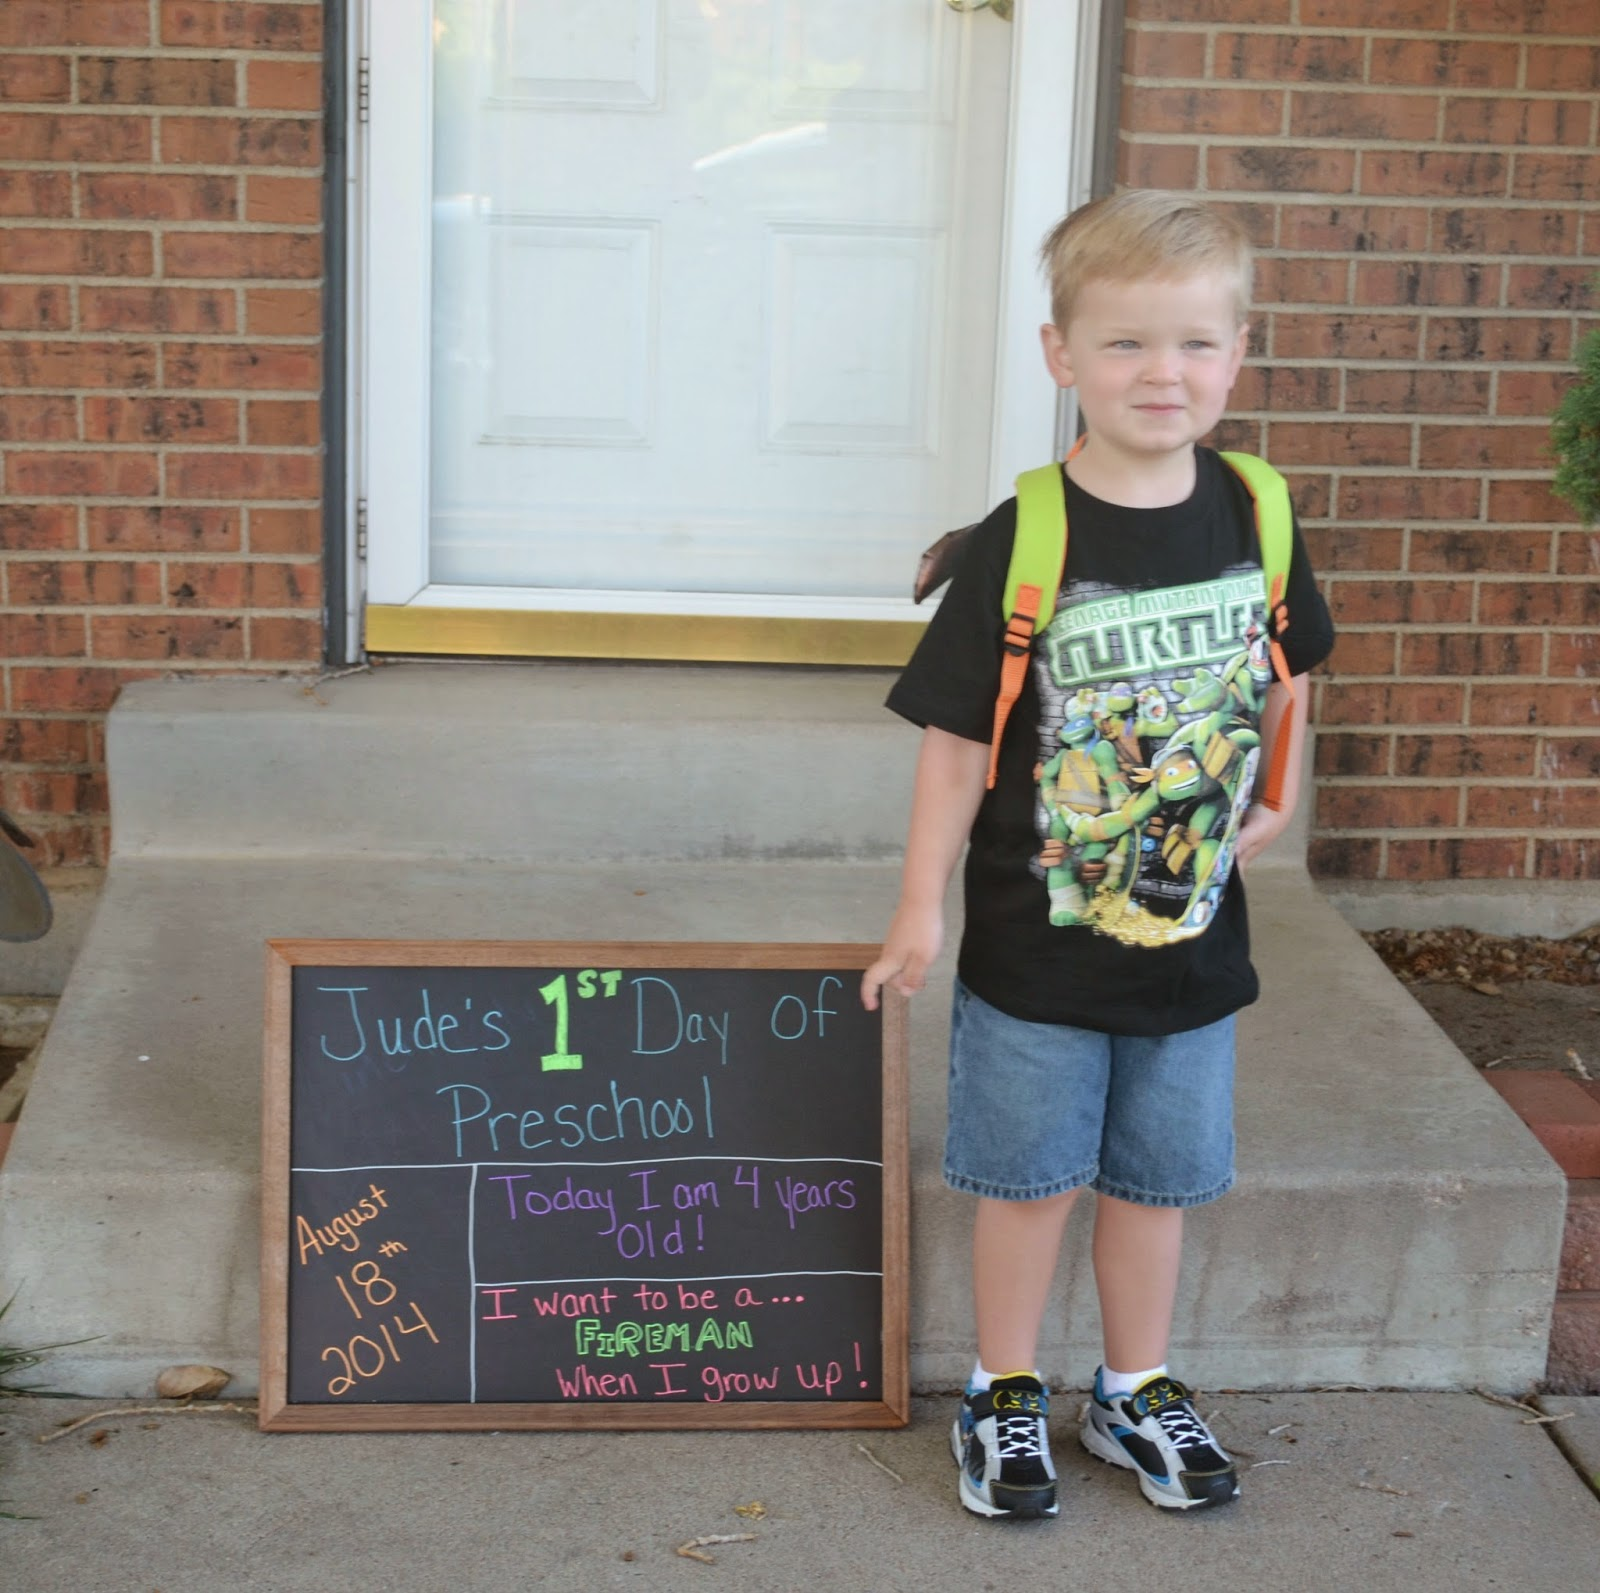 First Day of School picture Ideas.  First Day of school chalkboard.  Picture ideas for first day of school.  1st day of school picture ideas.